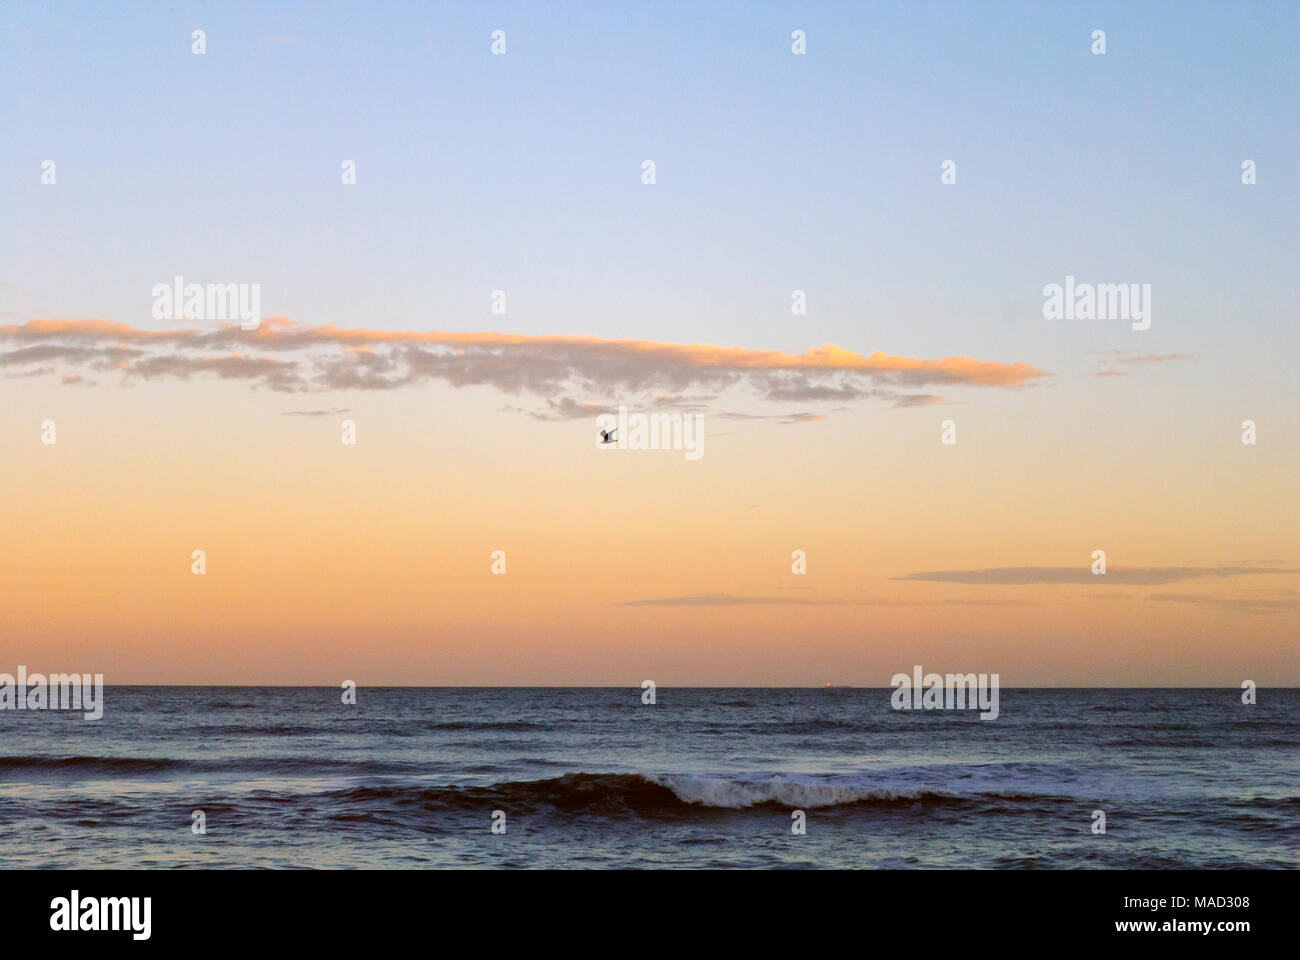 Beautiful sunset with bird flying across the sea wings wide open over at Punta del Este, Uruguay - Stock Image